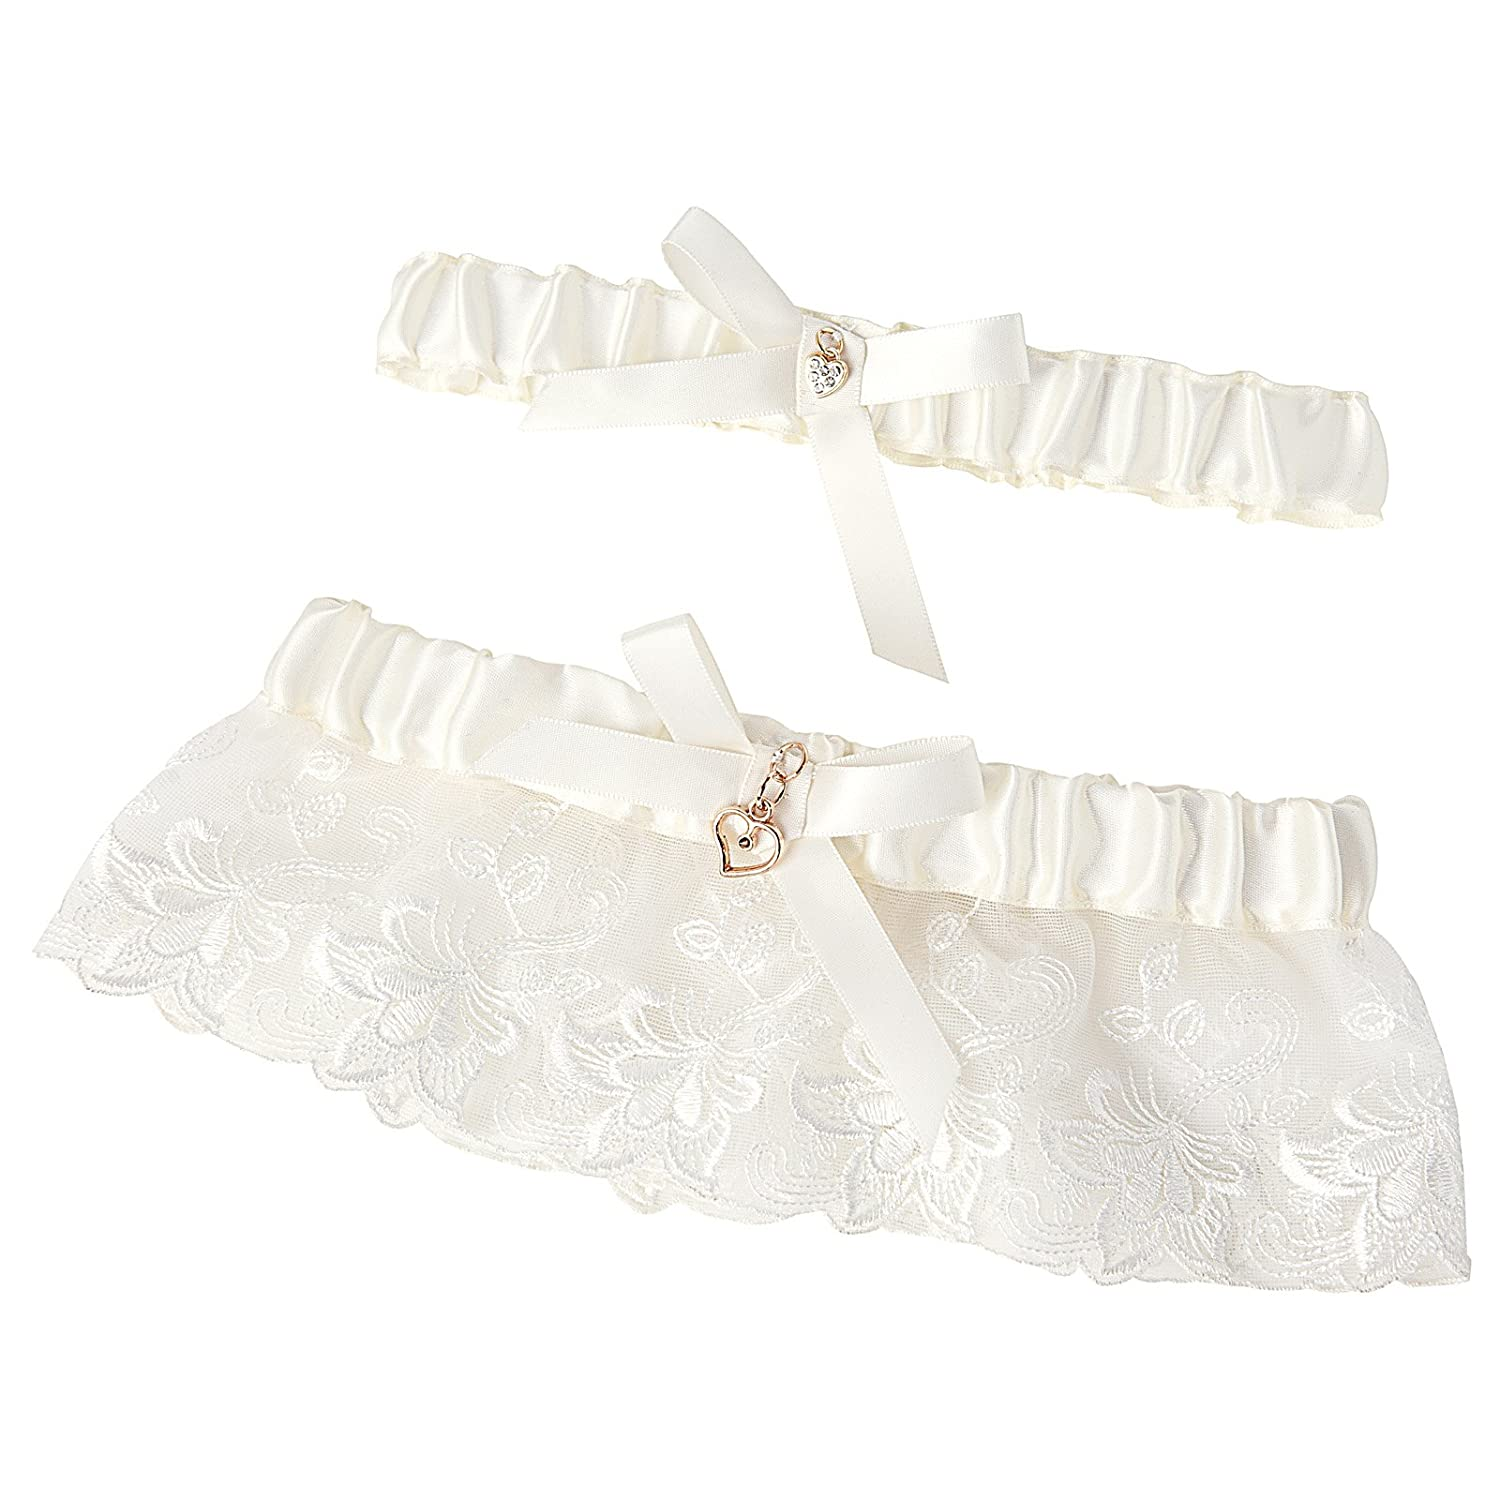 GRACE KARIN Bridal Garter Set Wedding Bridal Garter